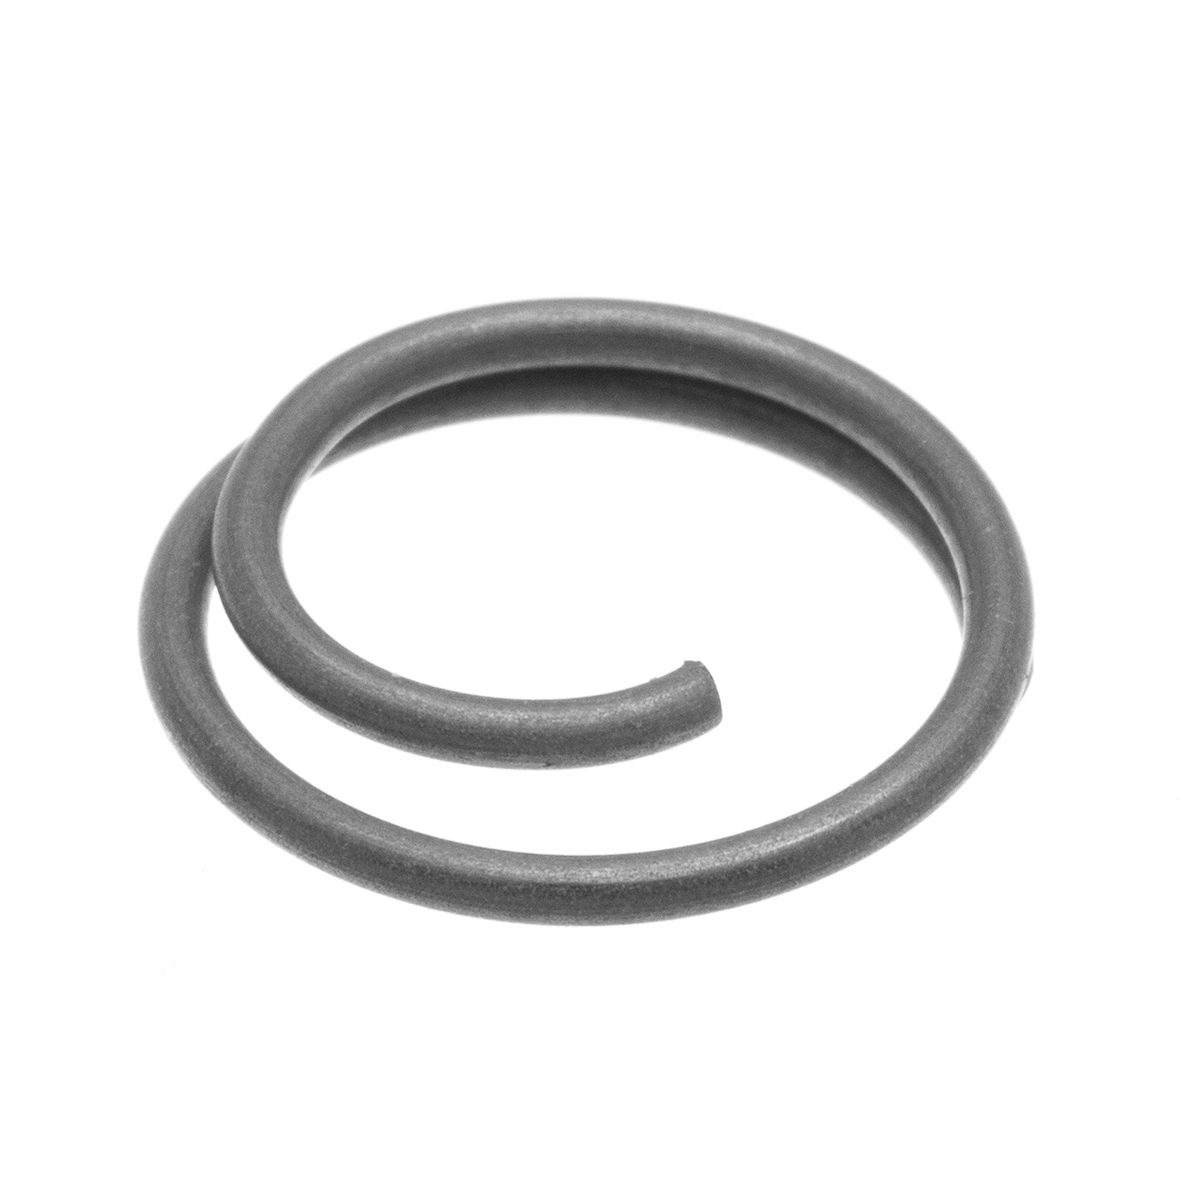 R6600T - Ring Safety 14mm (Pk Size: 100)